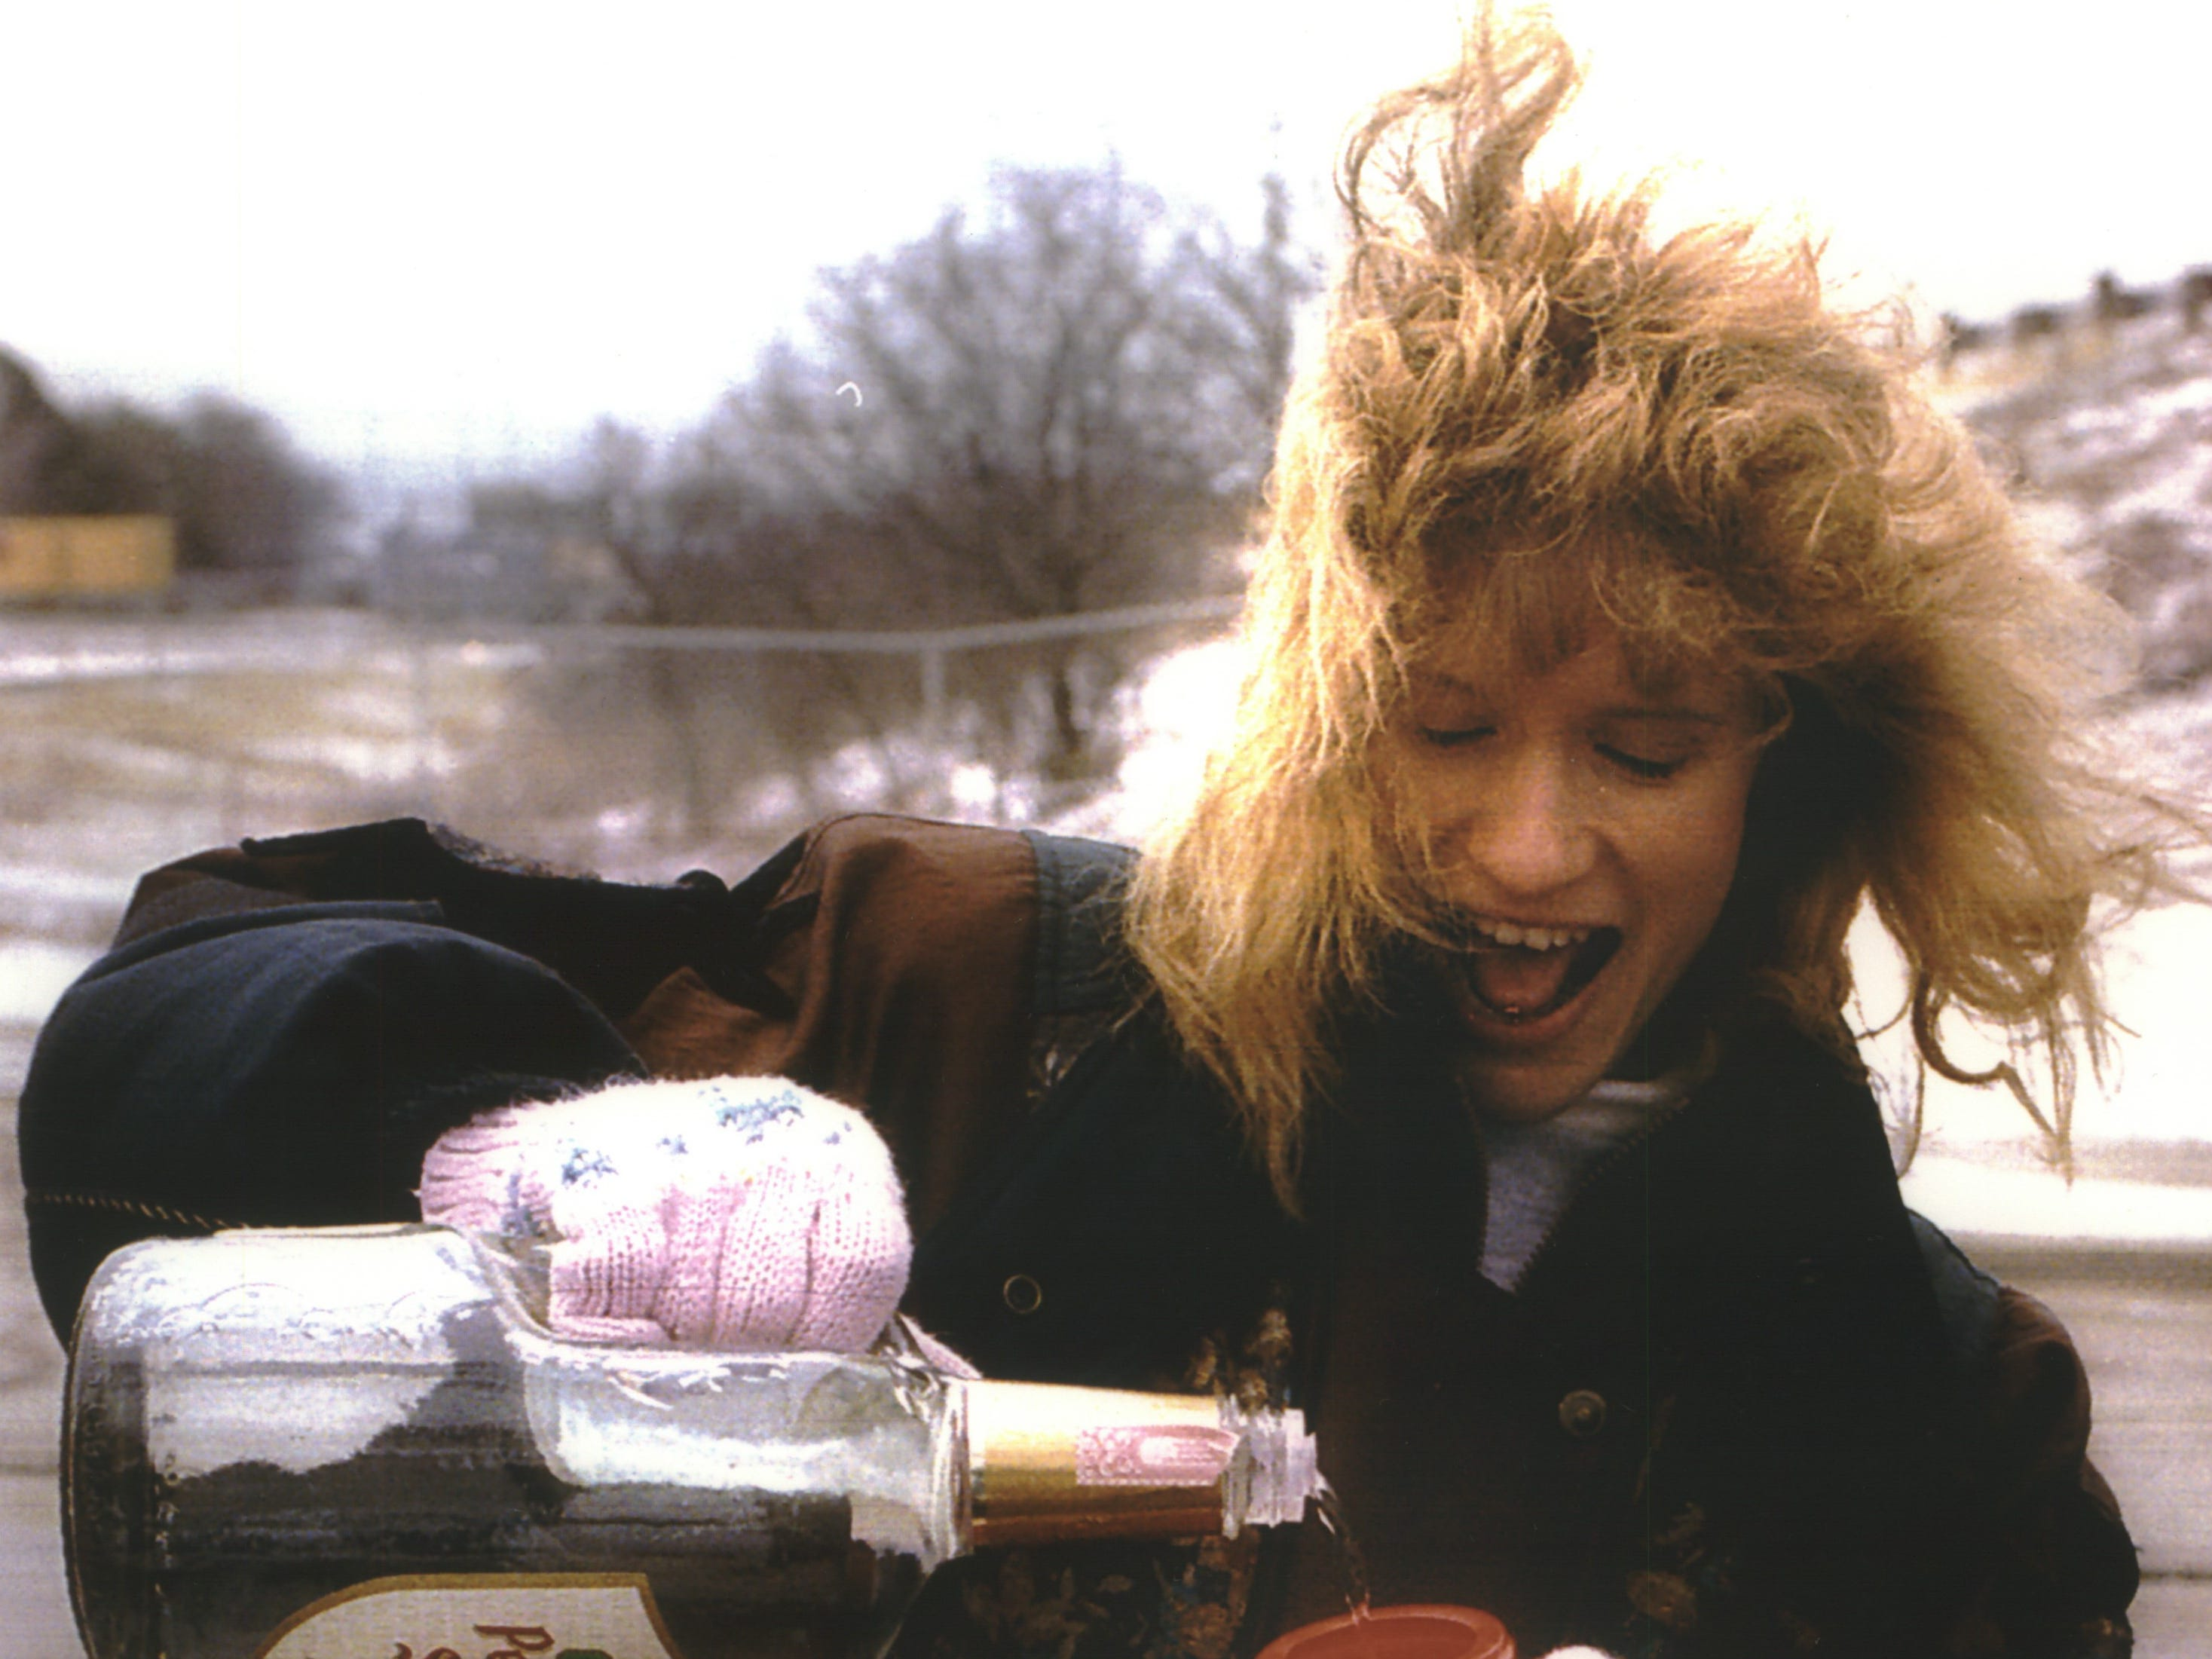 Julie Pesch adds peppermint schnapps to hot chocolate to stave off the unseasonable chill at County Stadium as she and her co-workers from Deluxe Data tailgate before opening day on April 5, 1994. This photo was published on the front page of the April 5, 1994, Milwaukee Journal. In the home opener, the Milwaukee Brewers defeated the Oakland A's, 11-7.